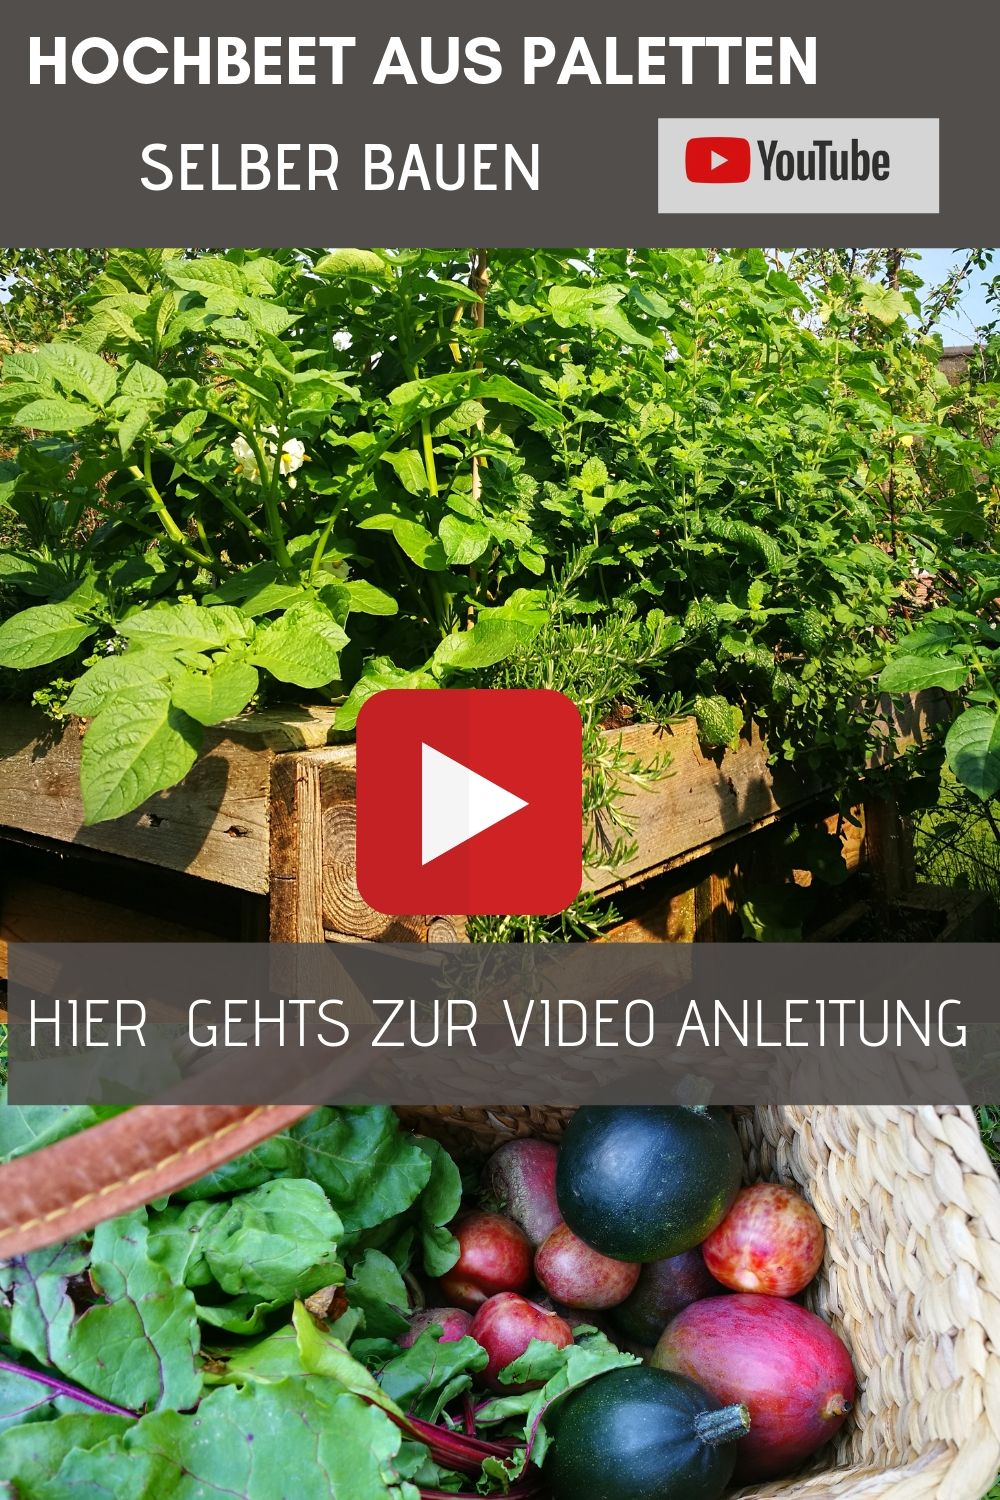 Hochbeet Aus Paletten Schichten ᐅ Hochbeet Aus Paletten Selber Bauen Upcycling Do It Yourself